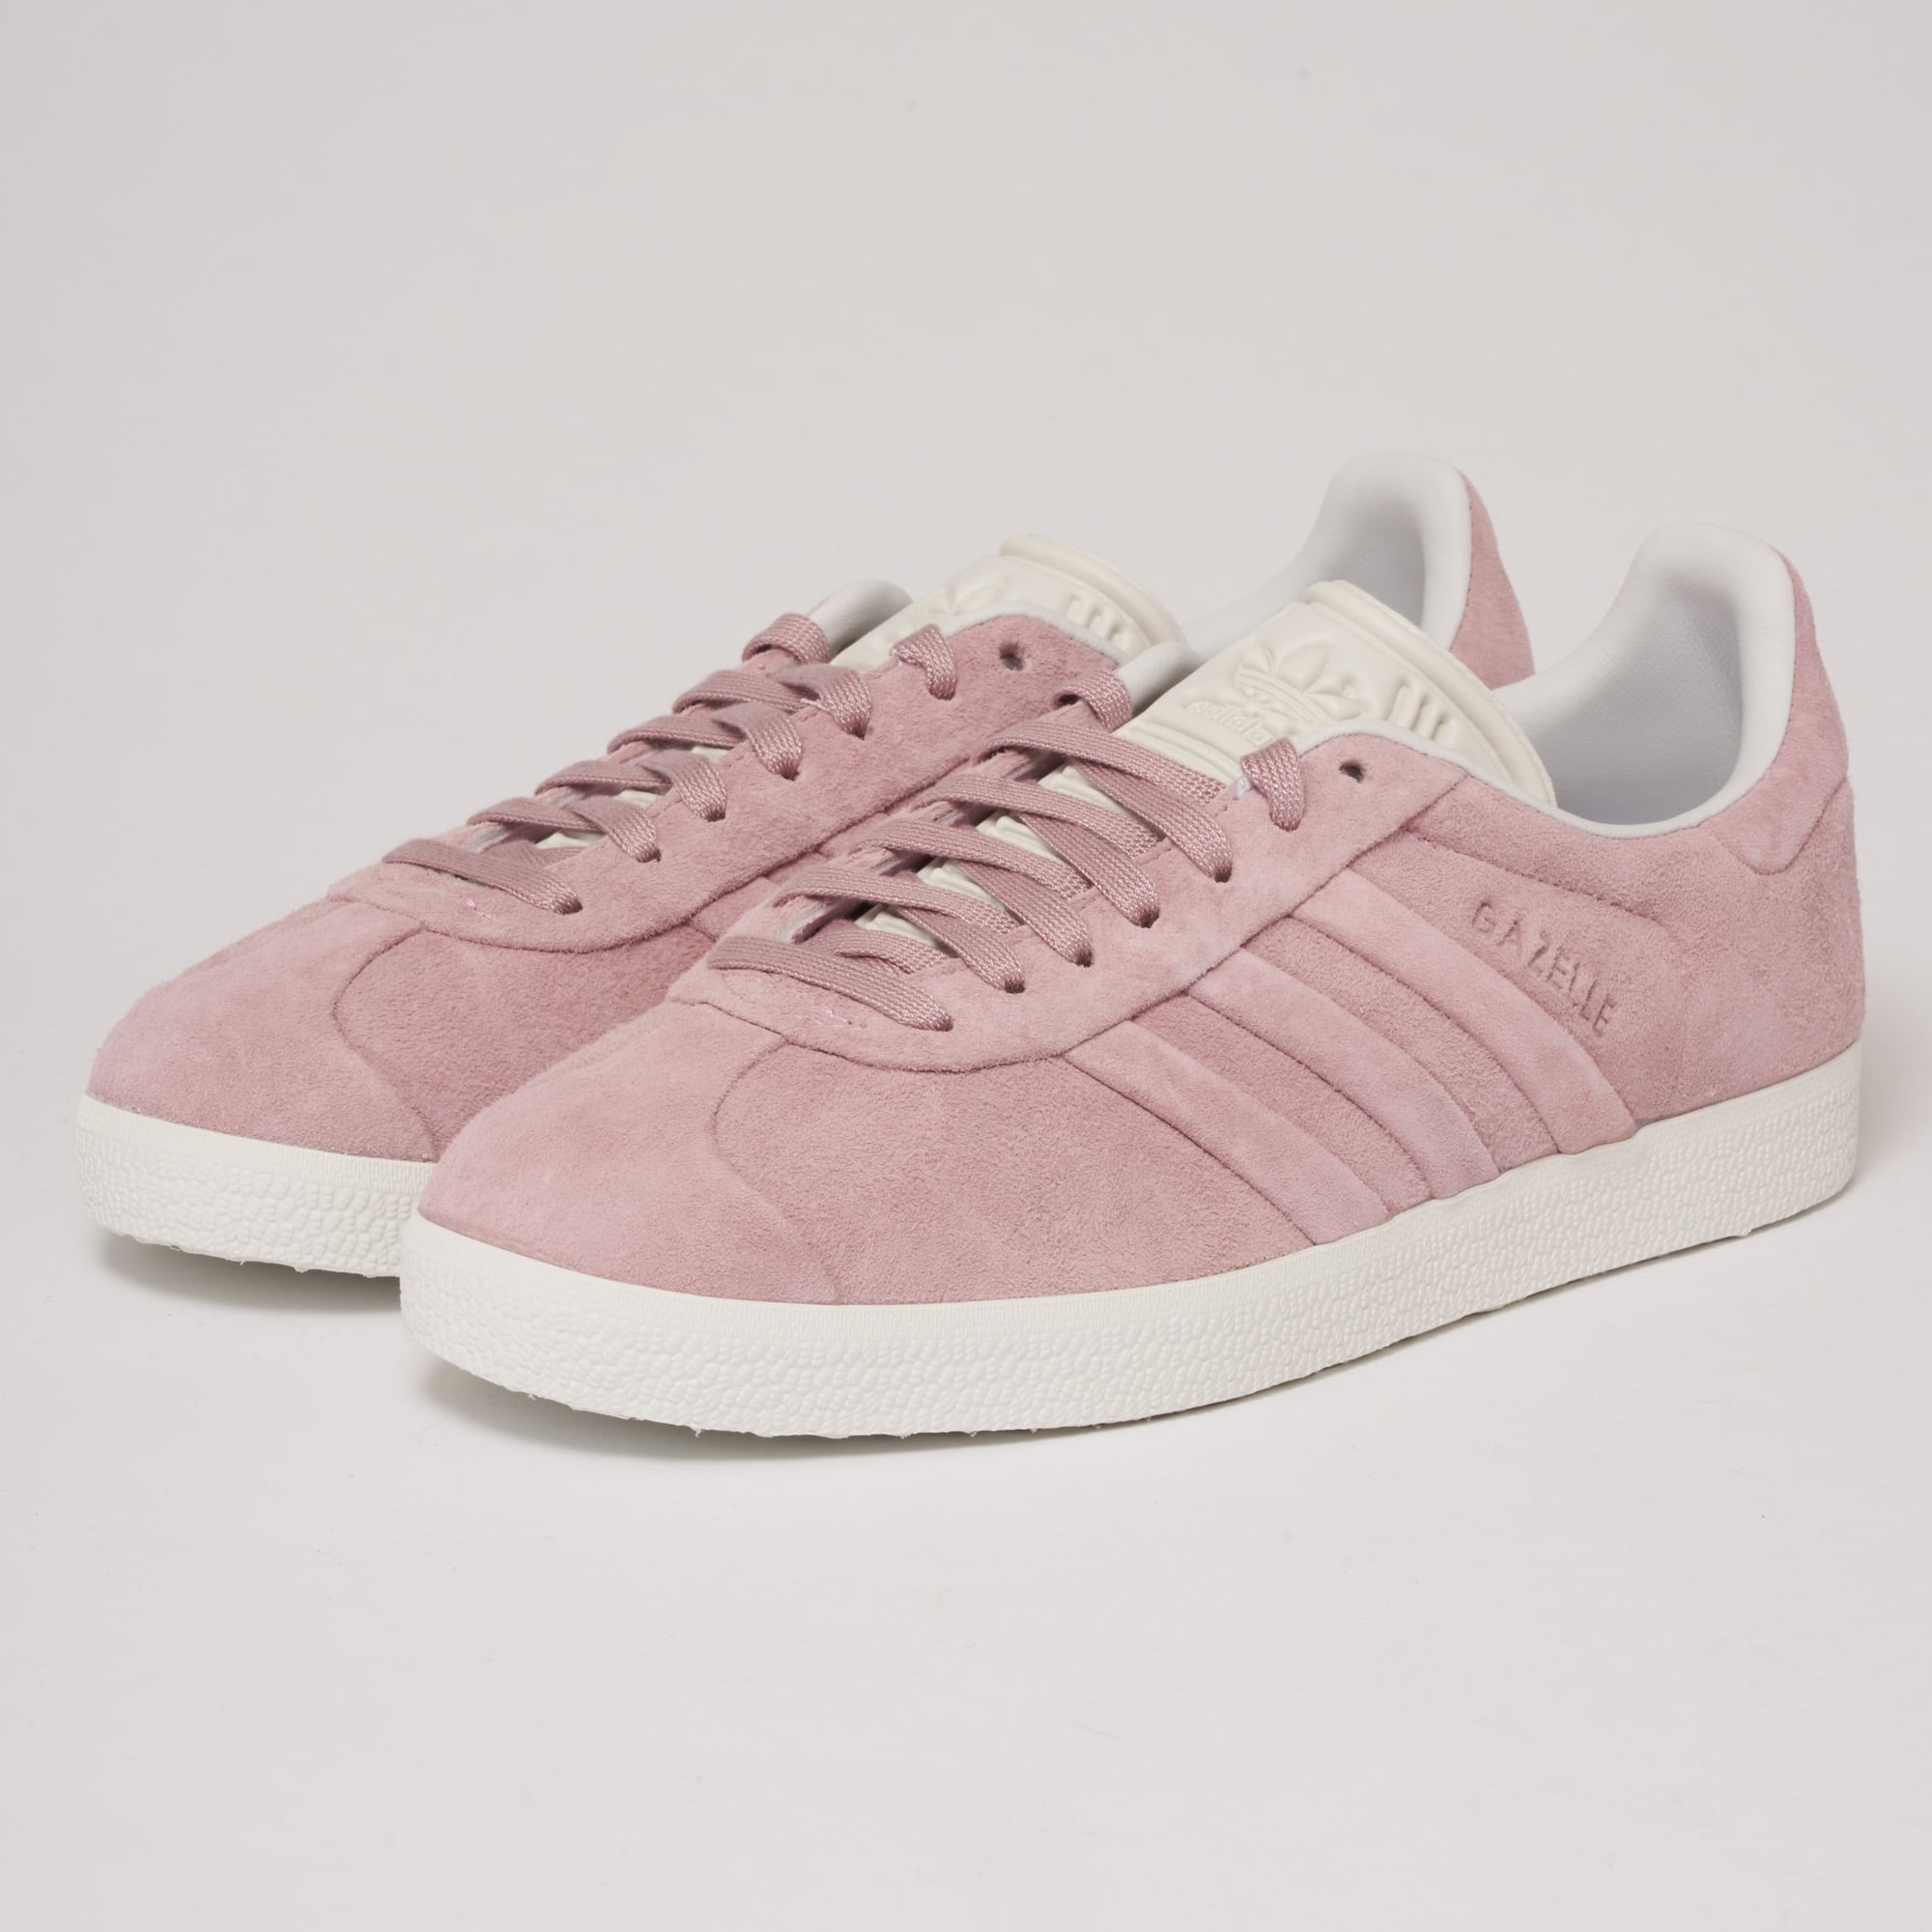 87156d88392852 Adidas Pink Womens Gazelle Stitch BB6708